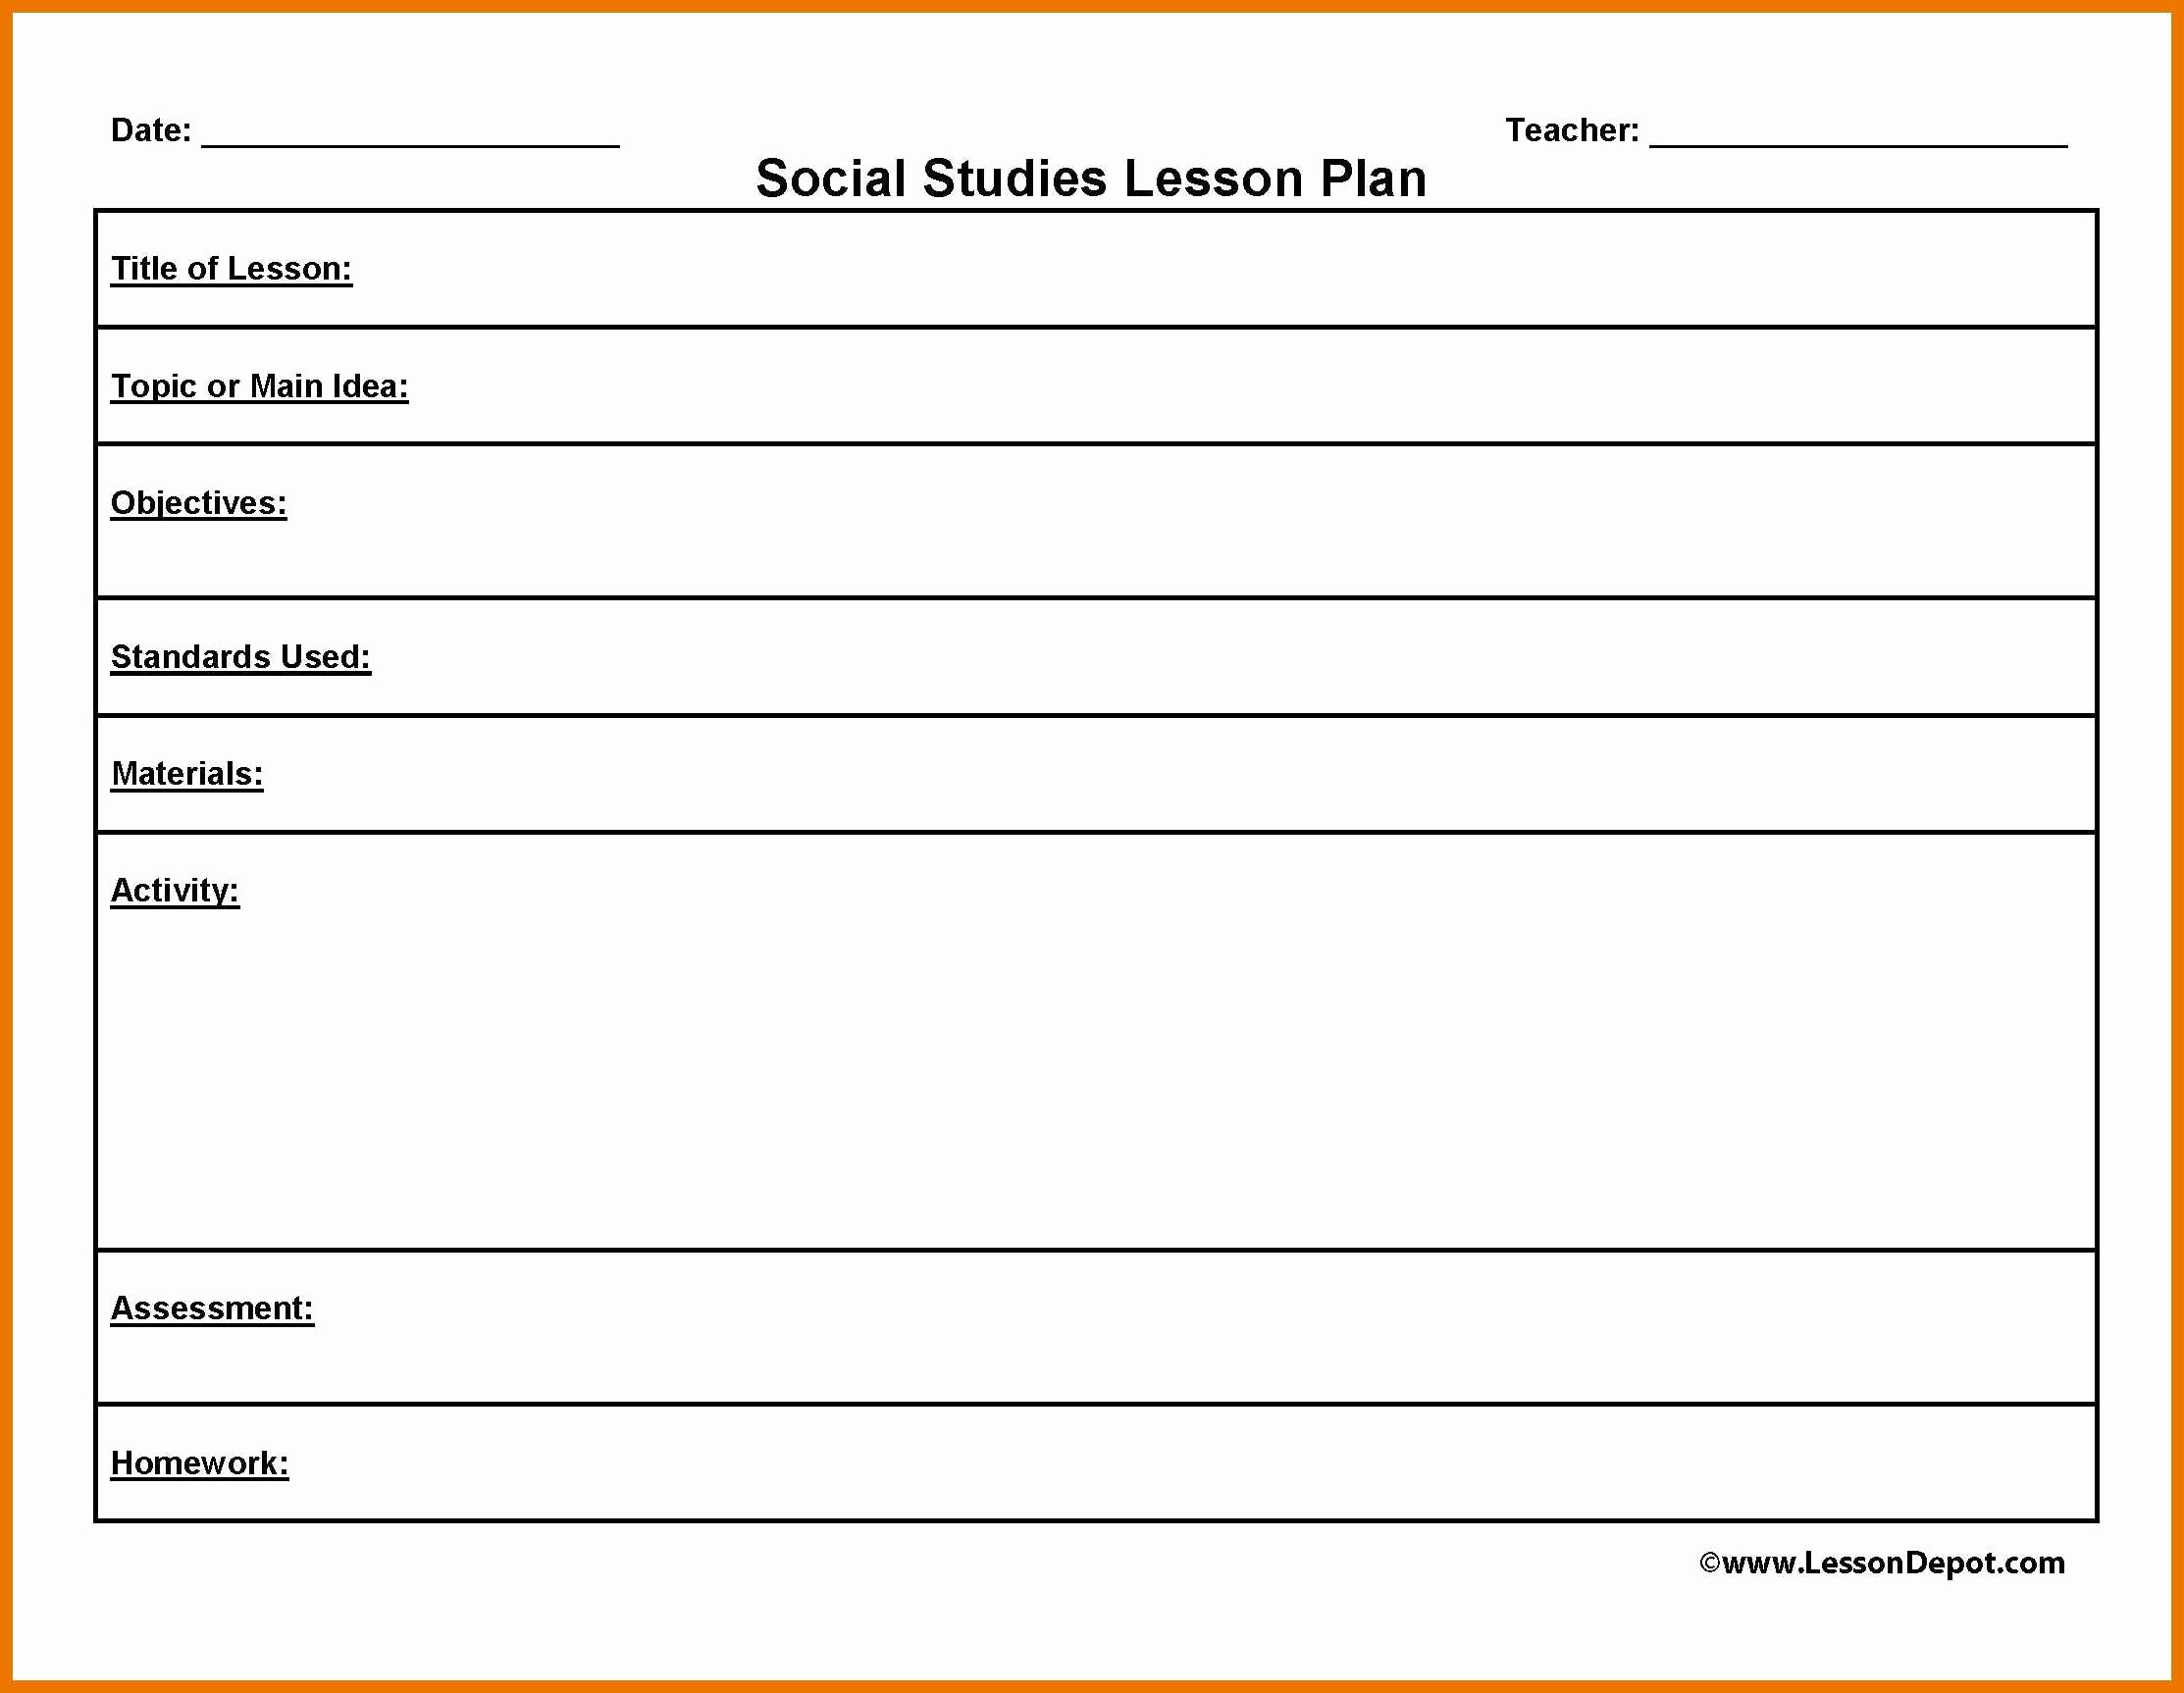 Weekly Lesson Plan Template Doc Inspirational Lesson Plan Template Word Doc Teacher Weekly Danielson